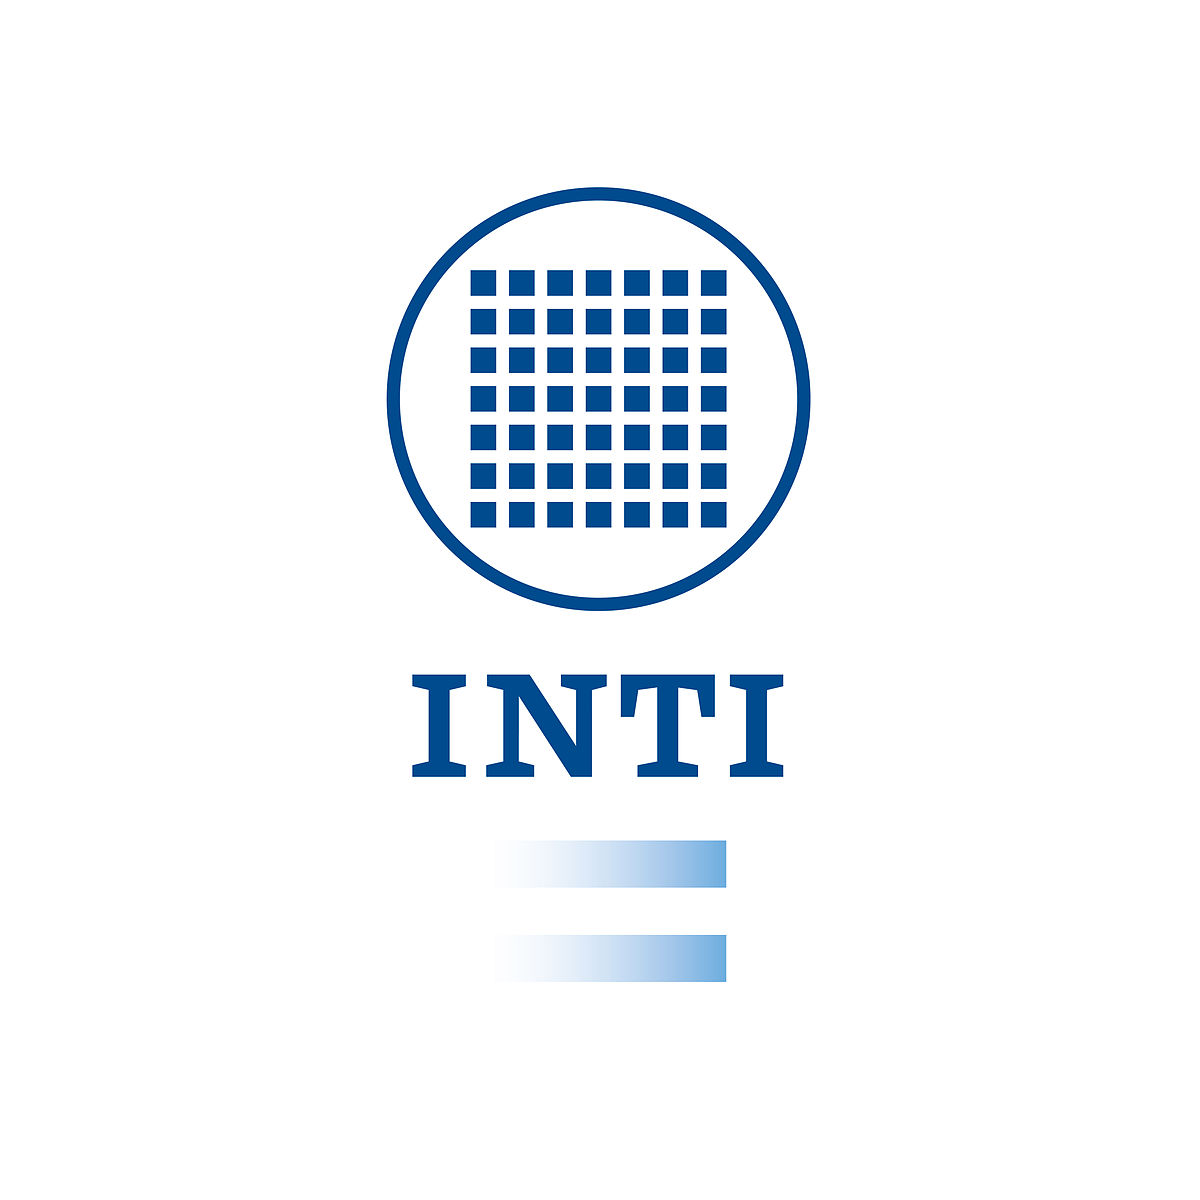 INTI Leads Argentina's Leapfrog in Industrial Technology through 3D Printing